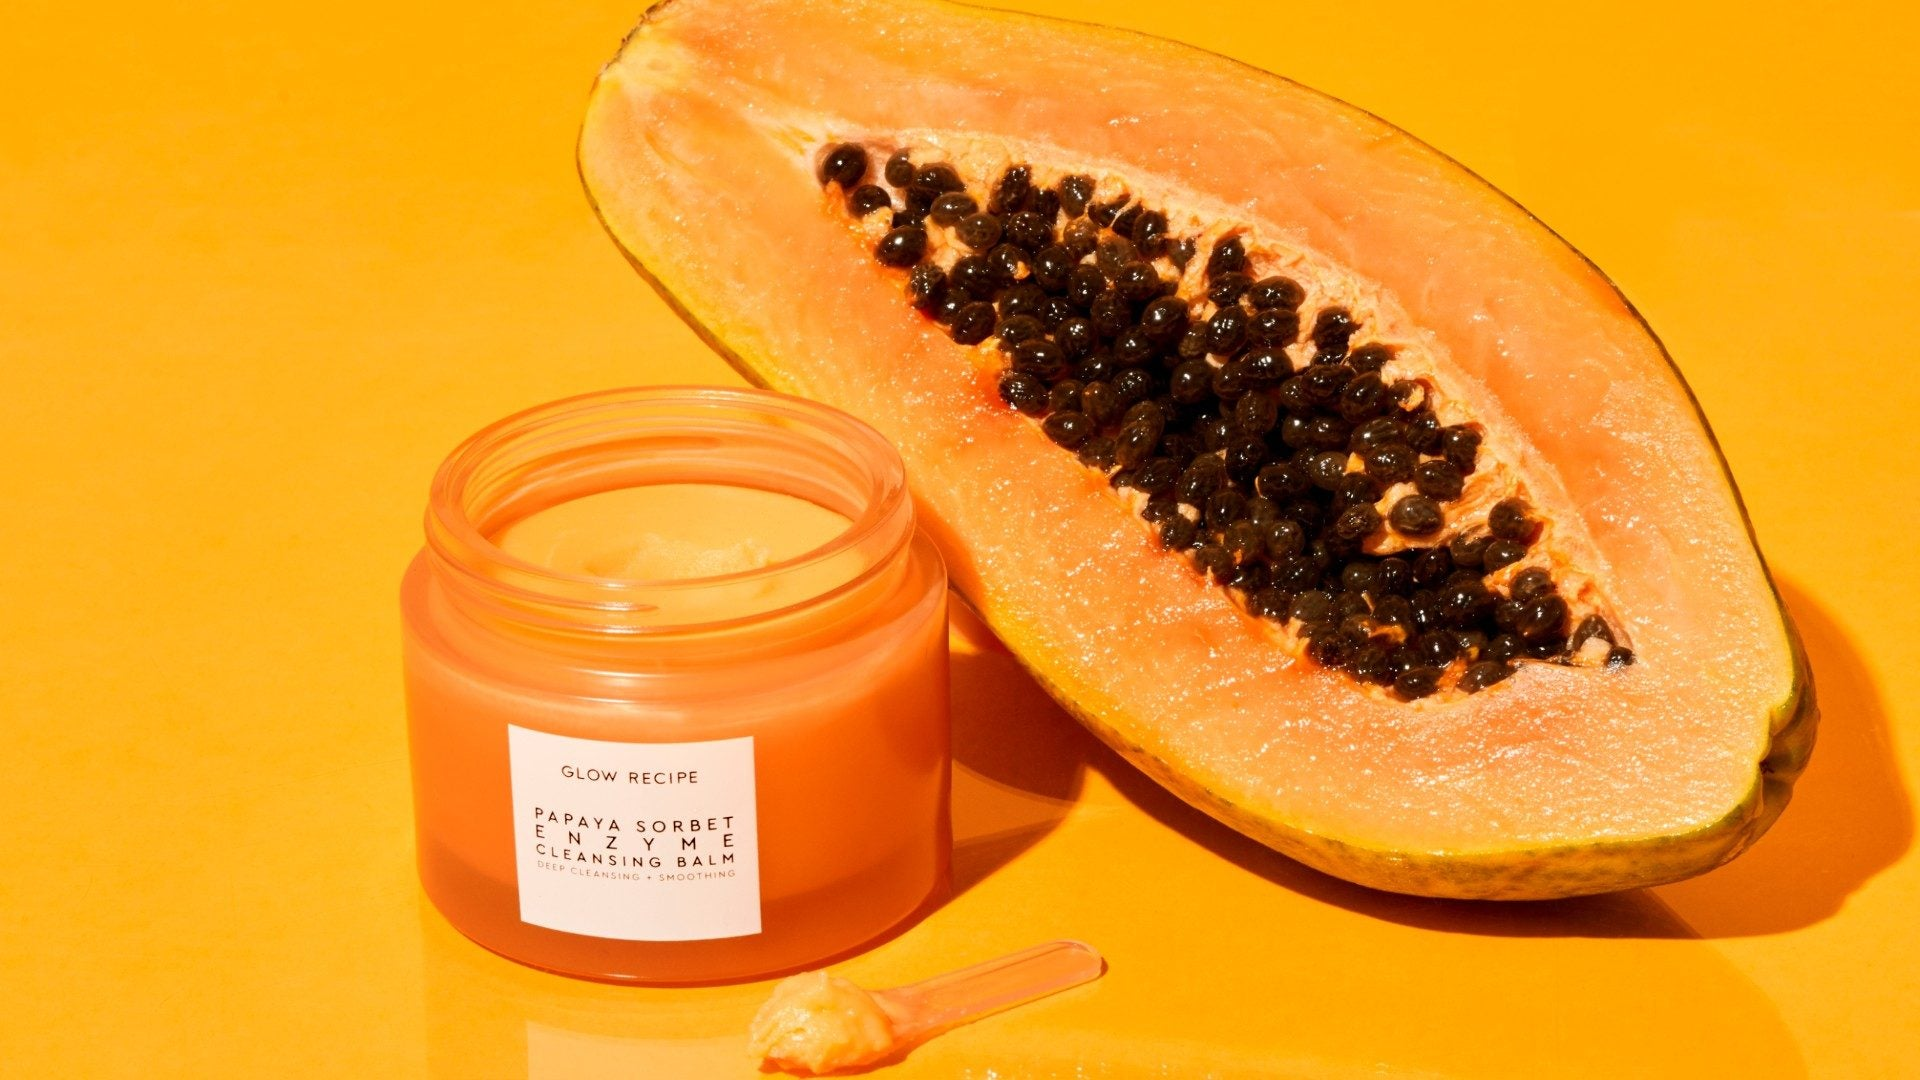 9 Hot New Beauty Products To Try Right Now